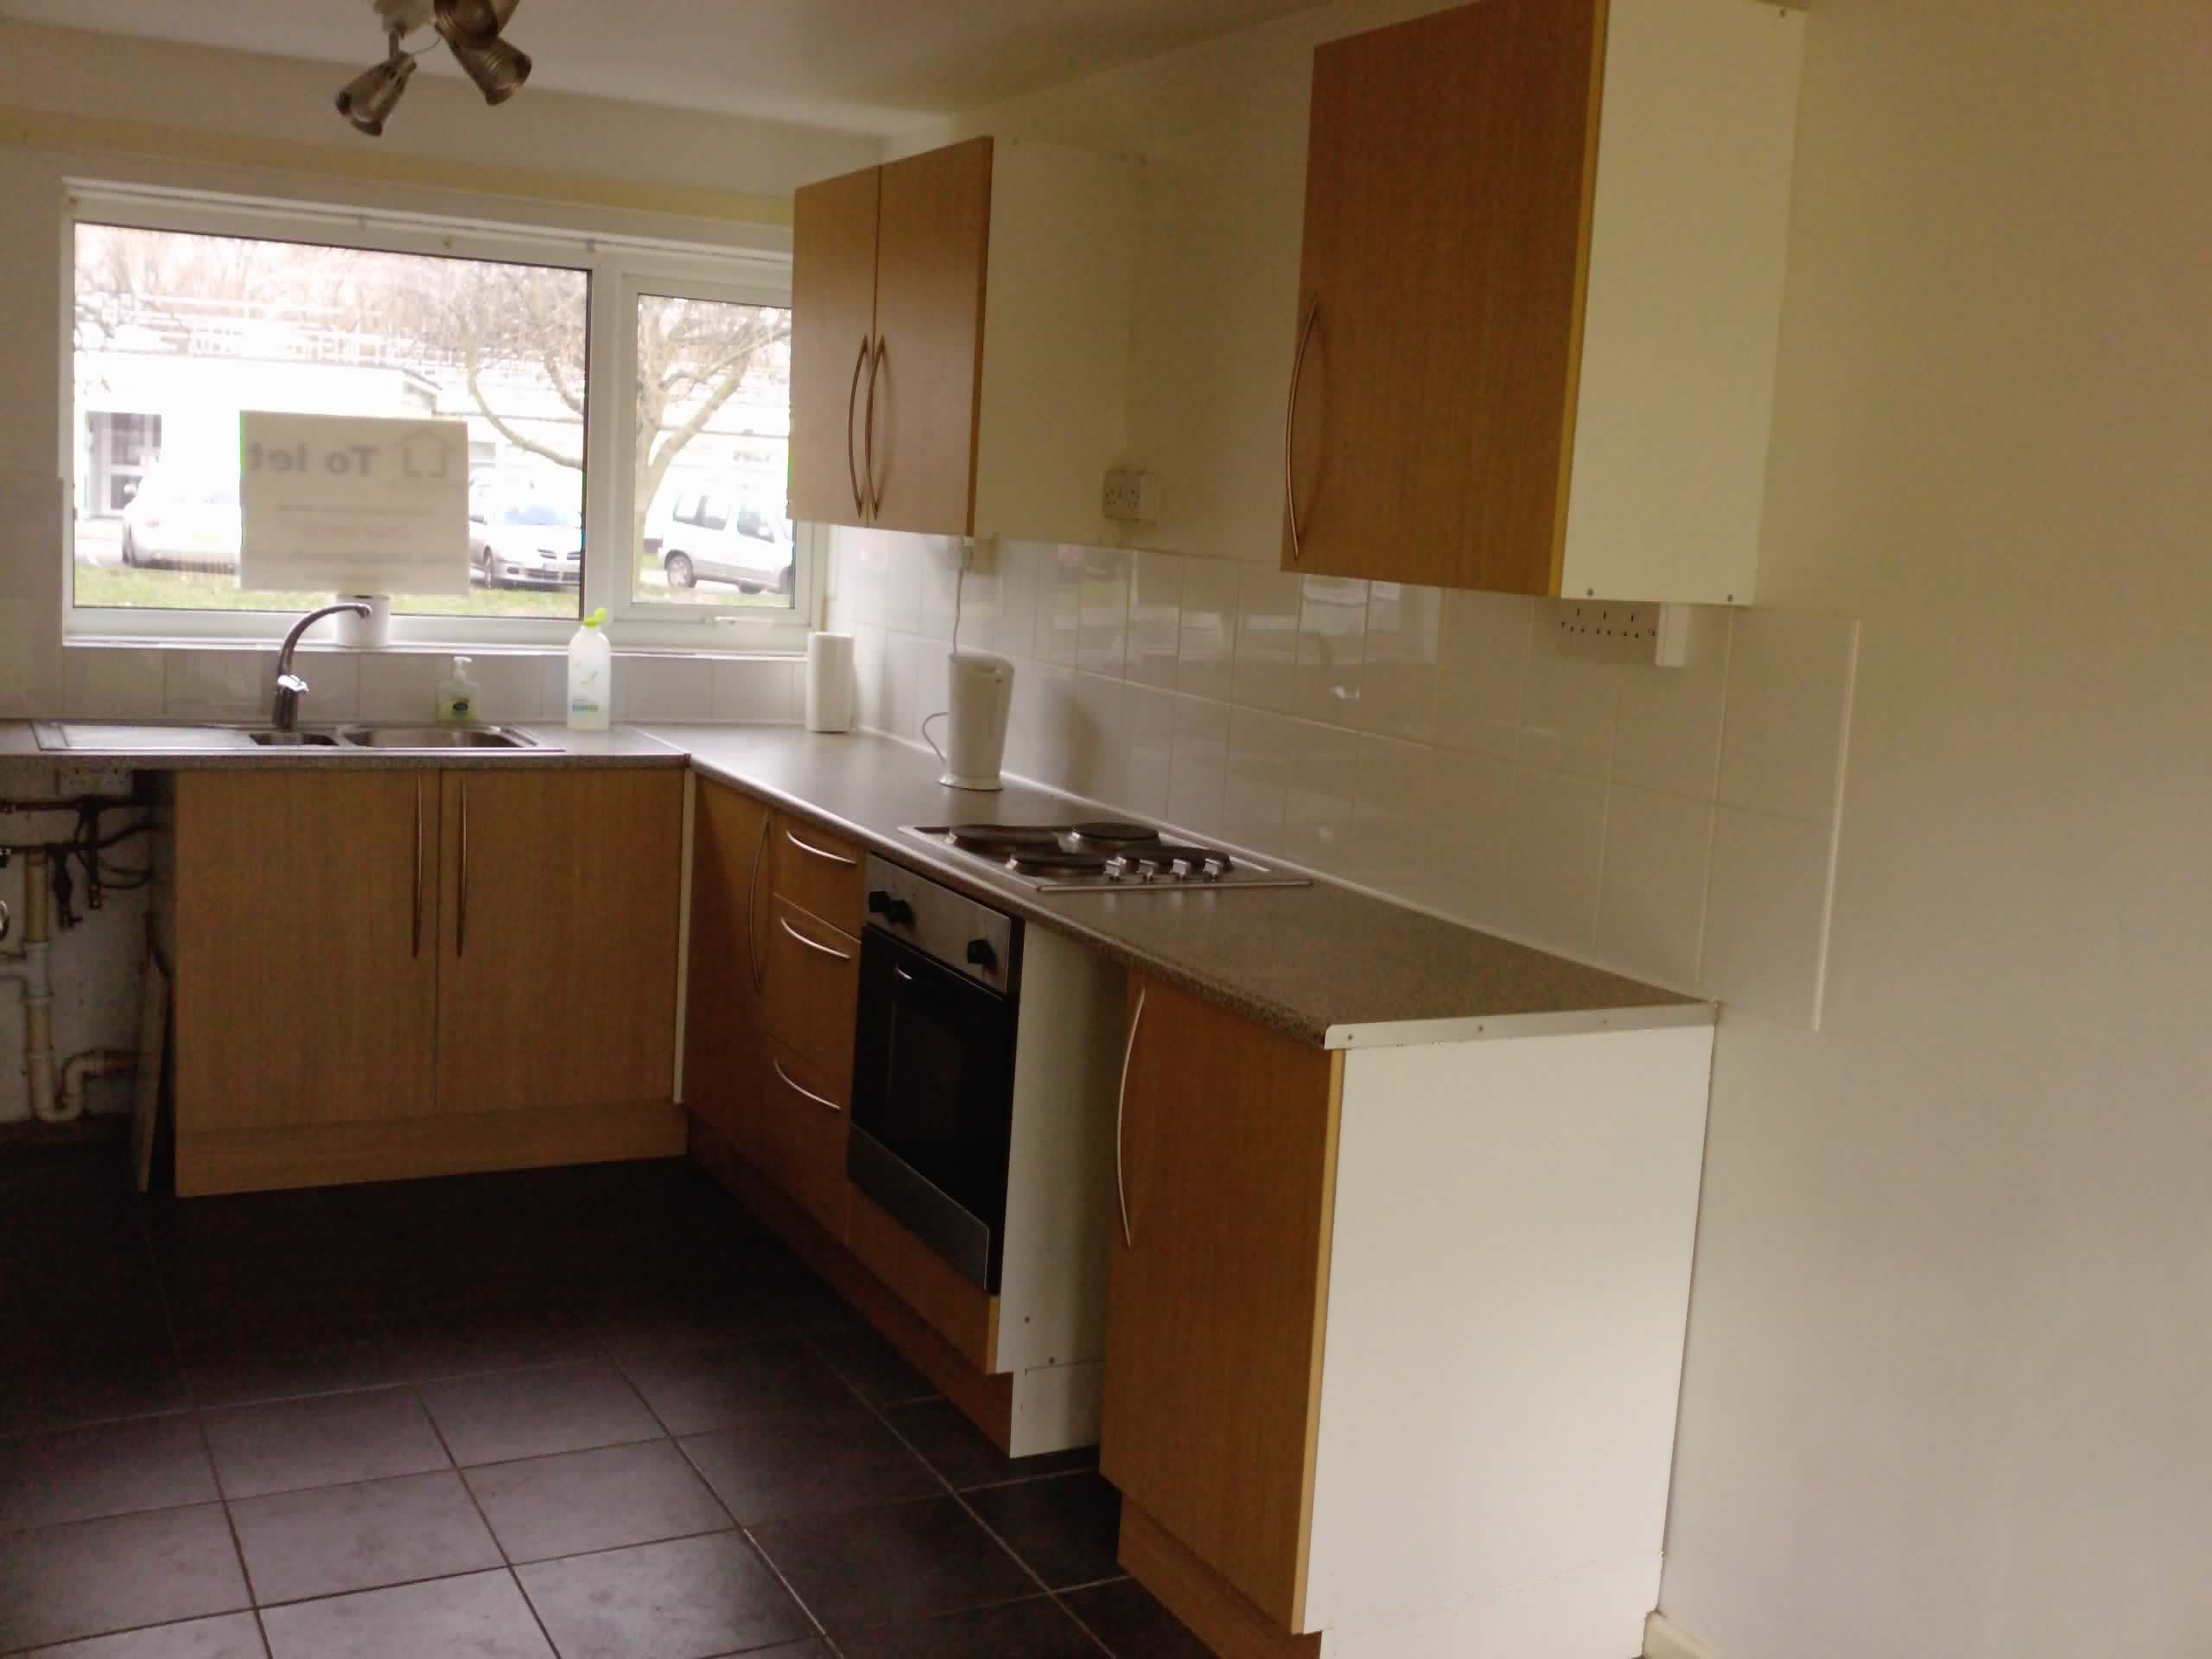 ... 3 Bedroom Unfurnished House To Rent On Whitmore Way, Basildon, SS14 By Private  Landlord ...